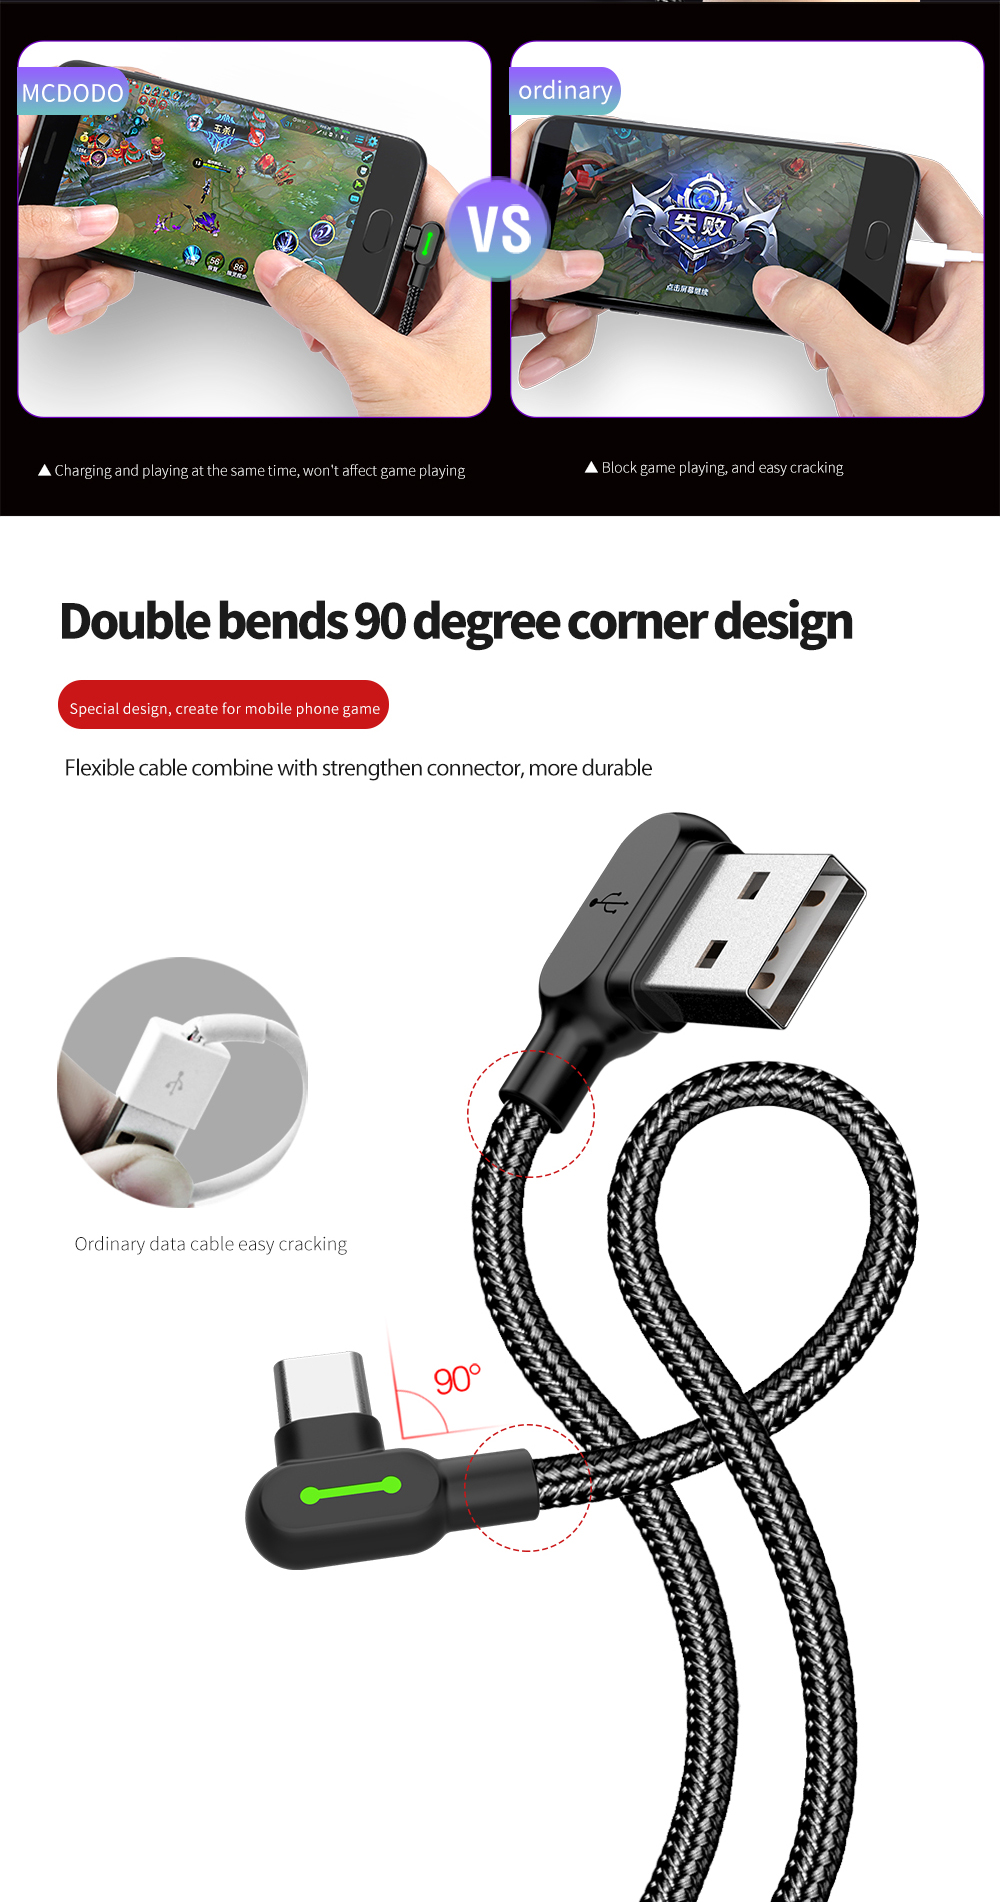 MCDODO Double 90 Degree Angle Type C Reversible Braided Fast Charging Data Cable With Light 1.2M